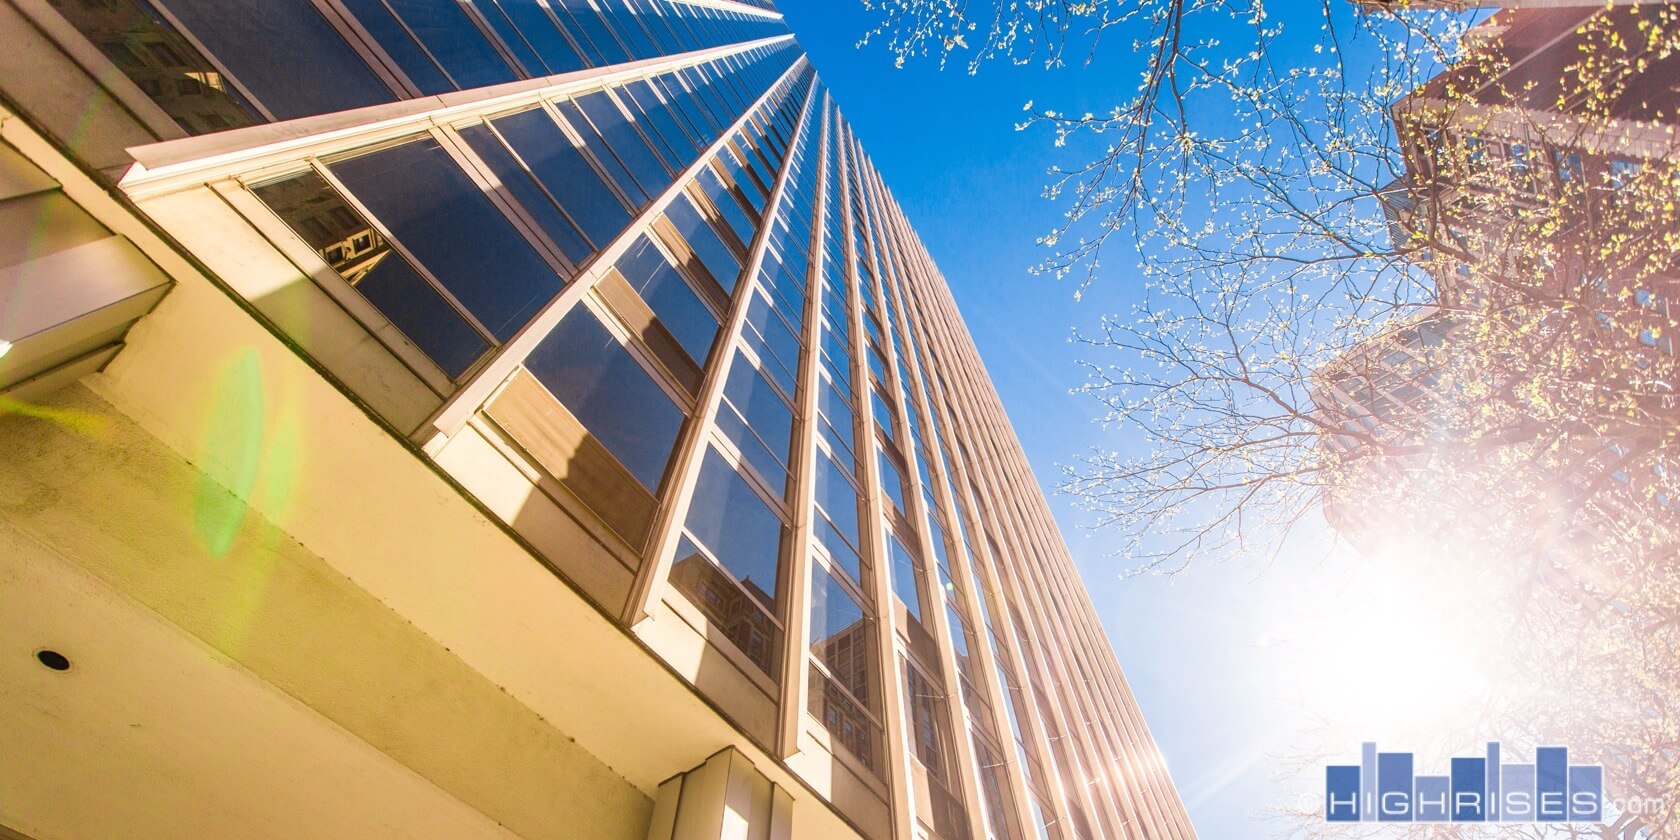 2400 N Lakeview Floor Plans: 2400 North Lakeview Condos Of Chicago, IL